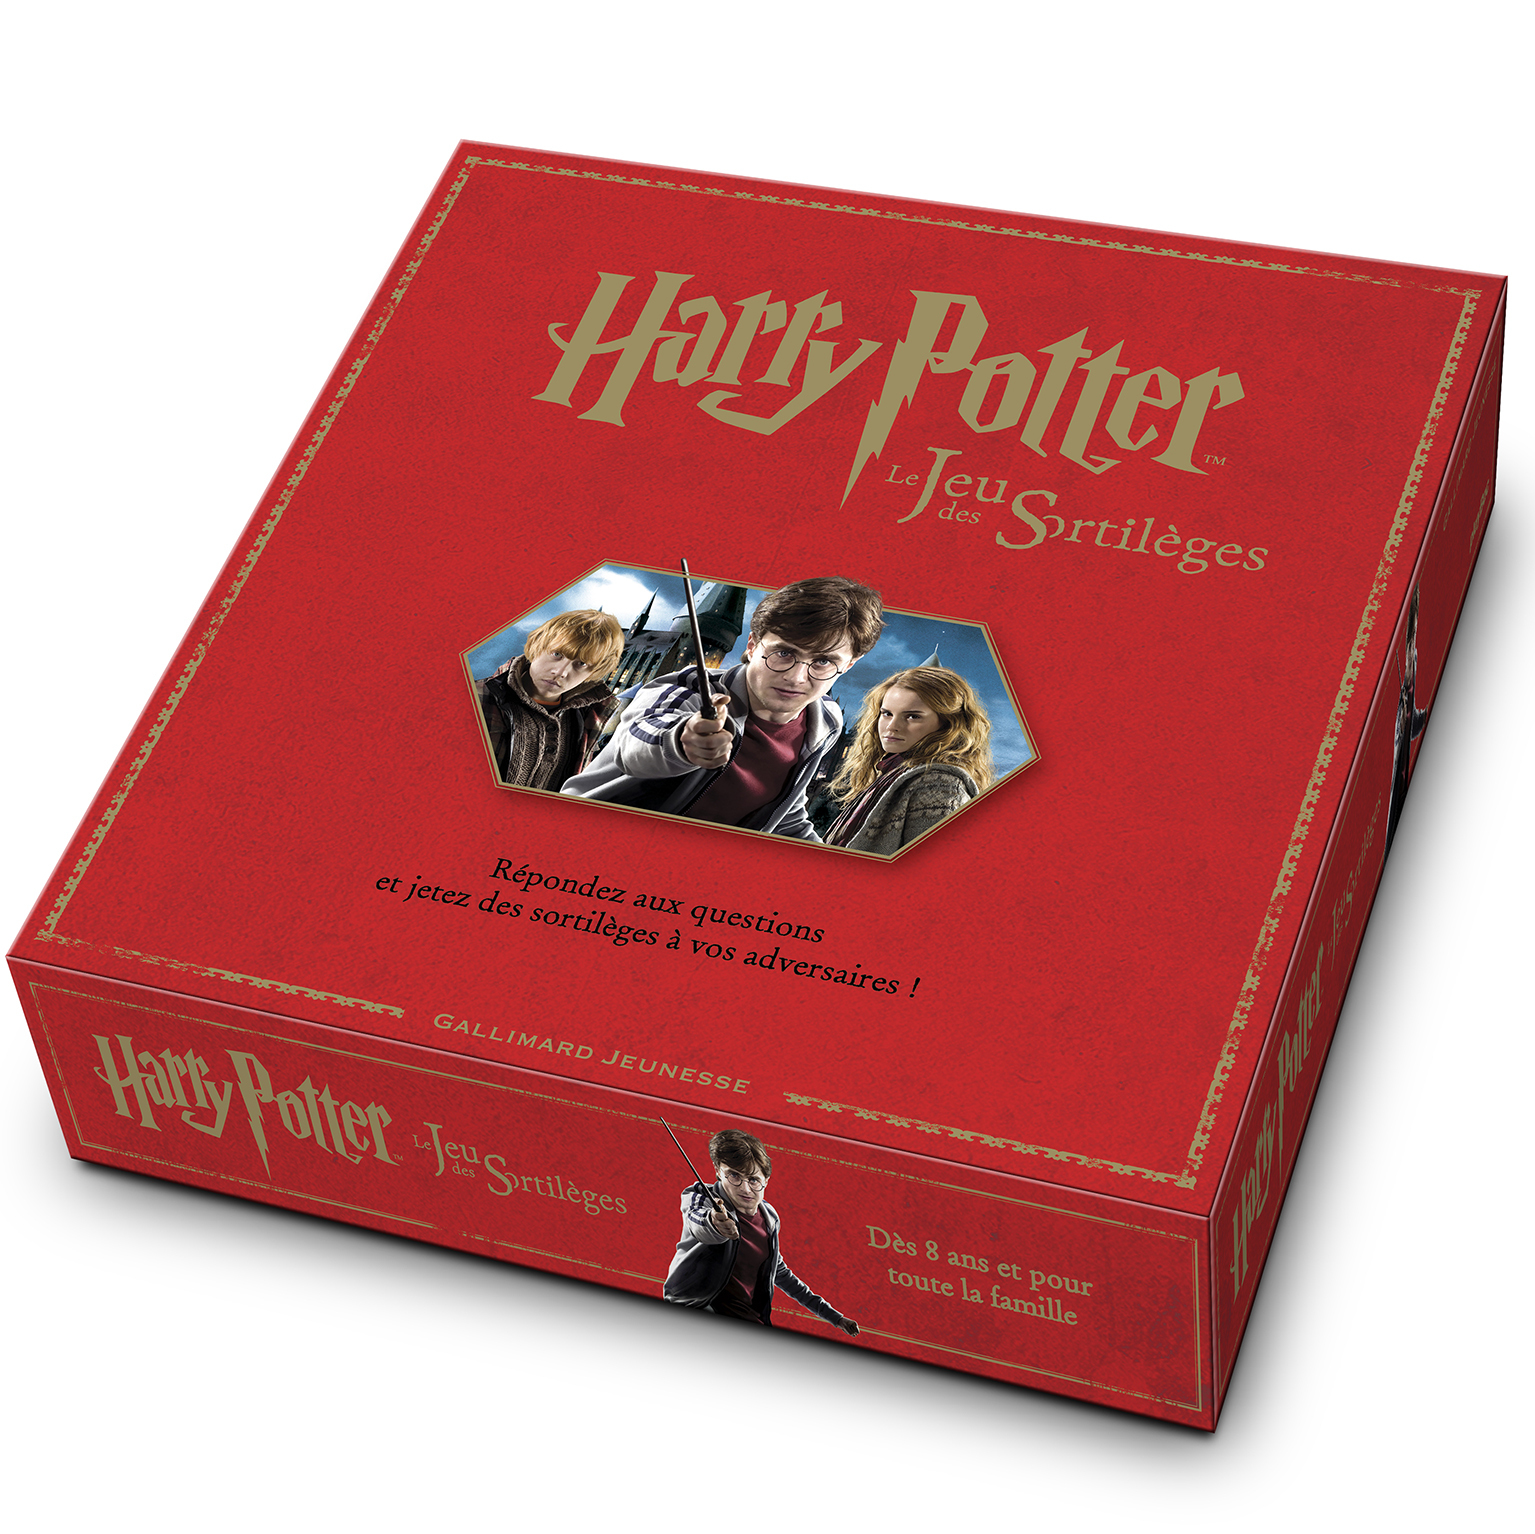 HARRY POTTER, LE JEU DES SORTILEGES